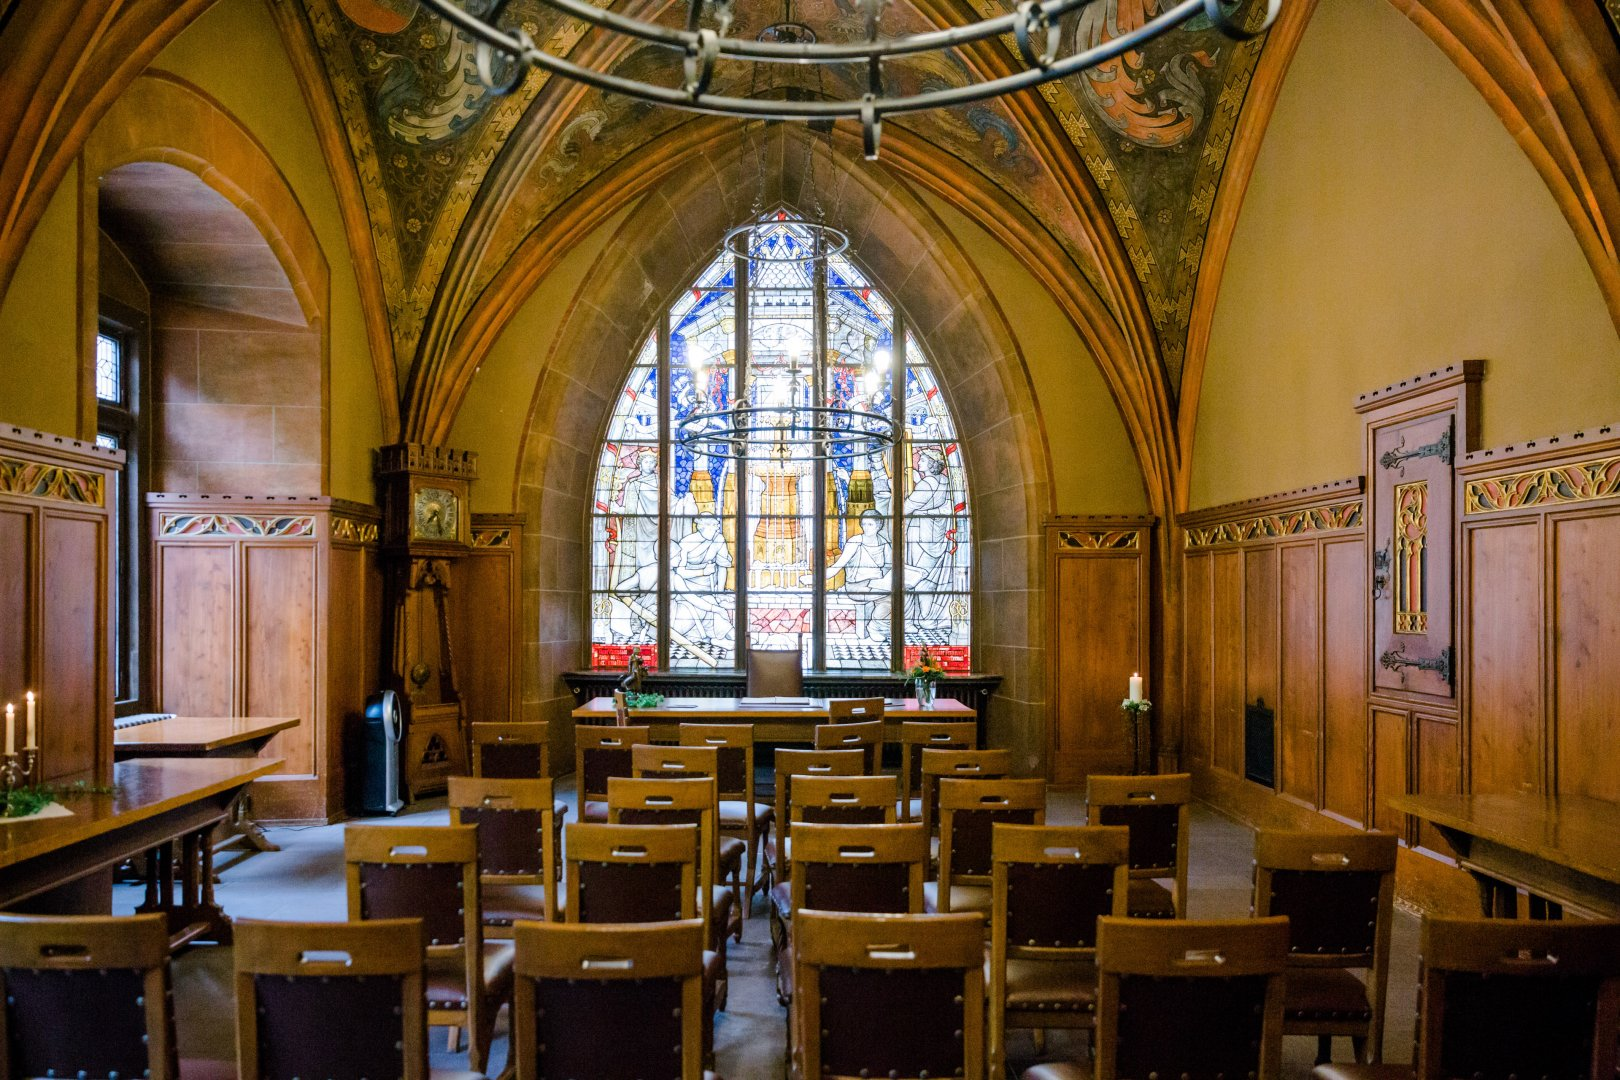 Stained glass Chapel Building Holy places Place of worship Architecture Glass Vault Church Window Aisle Interior design Arch Ceiling Room Parish Altar Cathedral Medieval architecture Byzantine architecture Crypt Furniture Arcade Convent Basilica Synagogue Symmetry Baptistery Hall